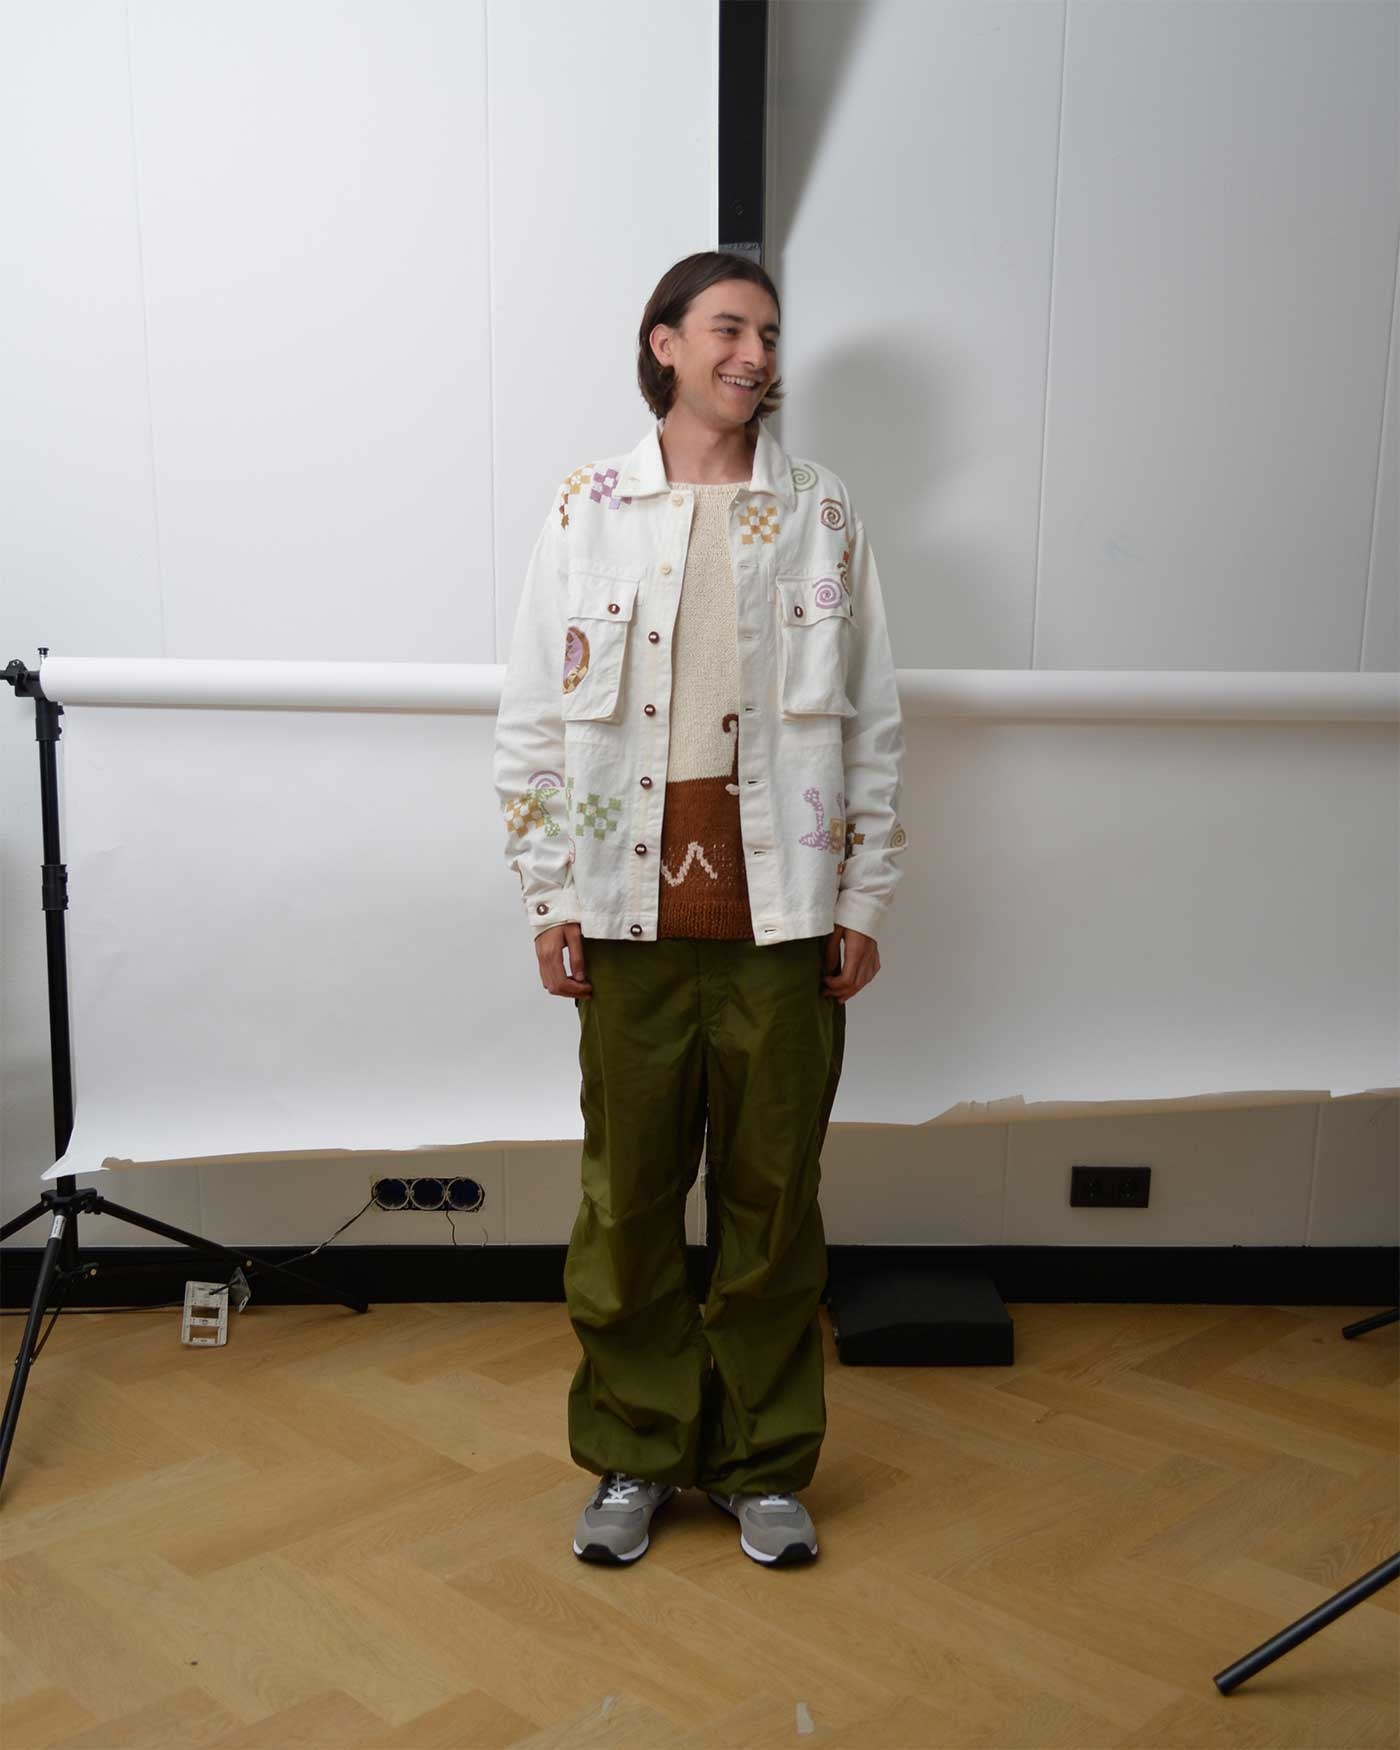 Noe Wears an embroidered Story MFG jacket, knitted Story MFG sweater, olive Engineered Garments Pants and a pair of New Balance shoes